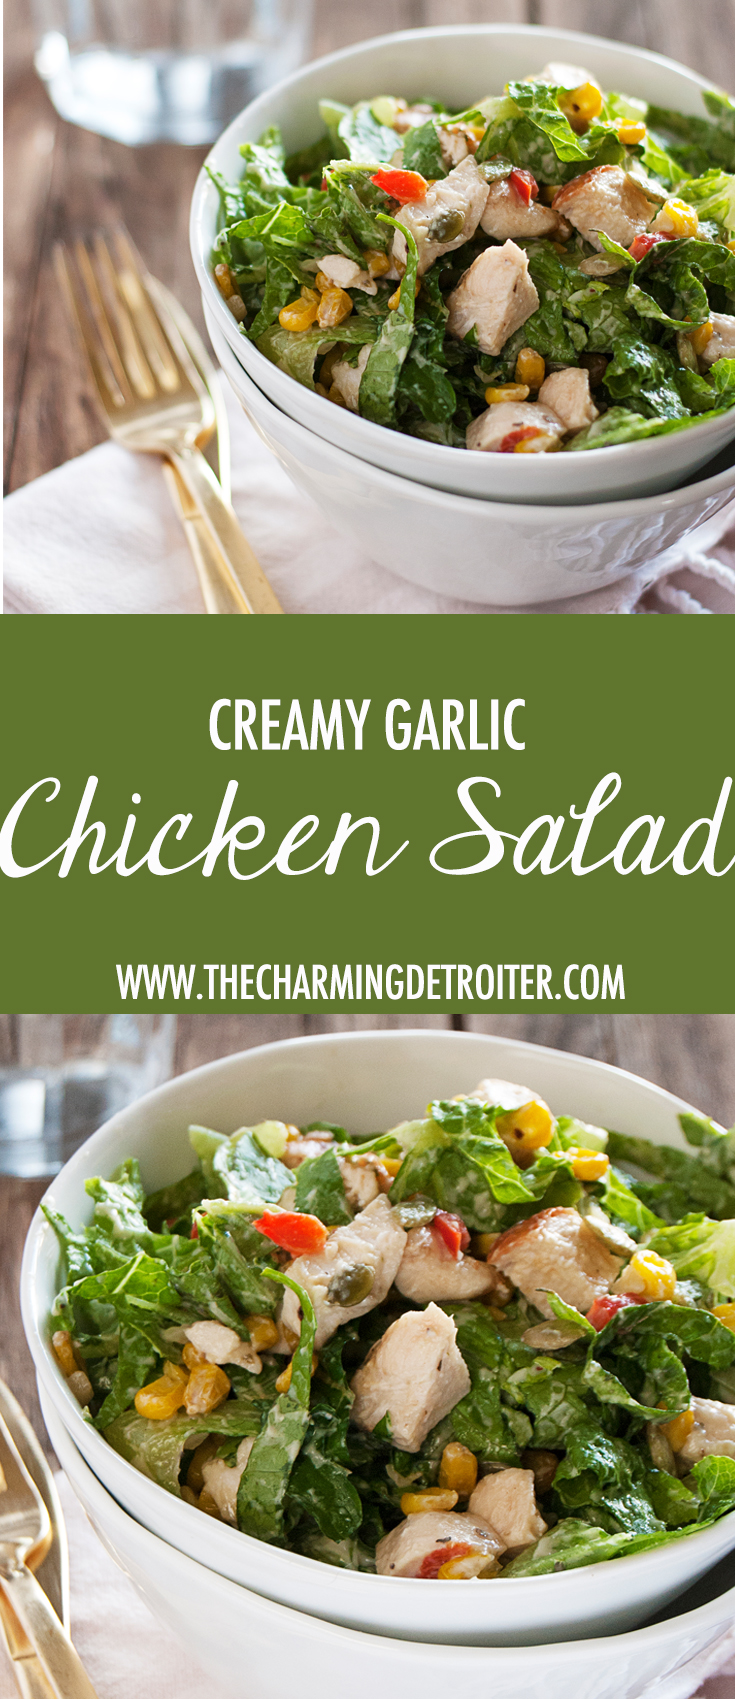 This creamy garlic chicken salad is going to be your new go-to weeknight salad, featuring roasted bell pepper and corn, romaine, chicken, and a creamy garlic dressing.